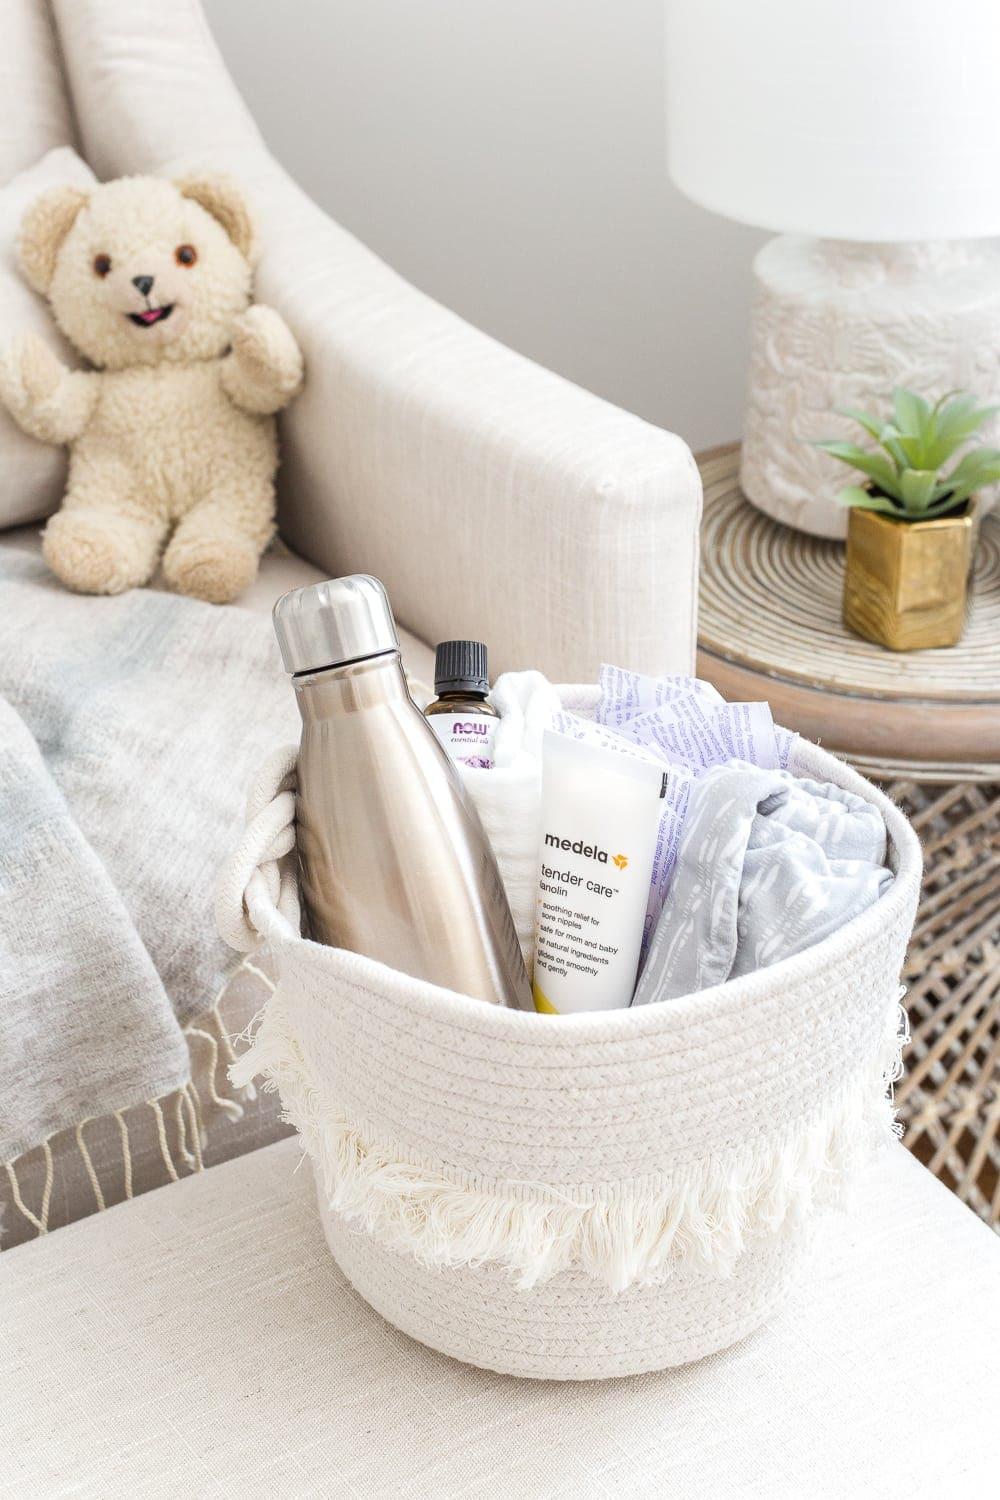 Nursery Organization | Breastfeeding basket to keep beside a chair filled with nursing pads, water bottle, lanolin, burp cloths, nursing cover, and lavender essential oil.